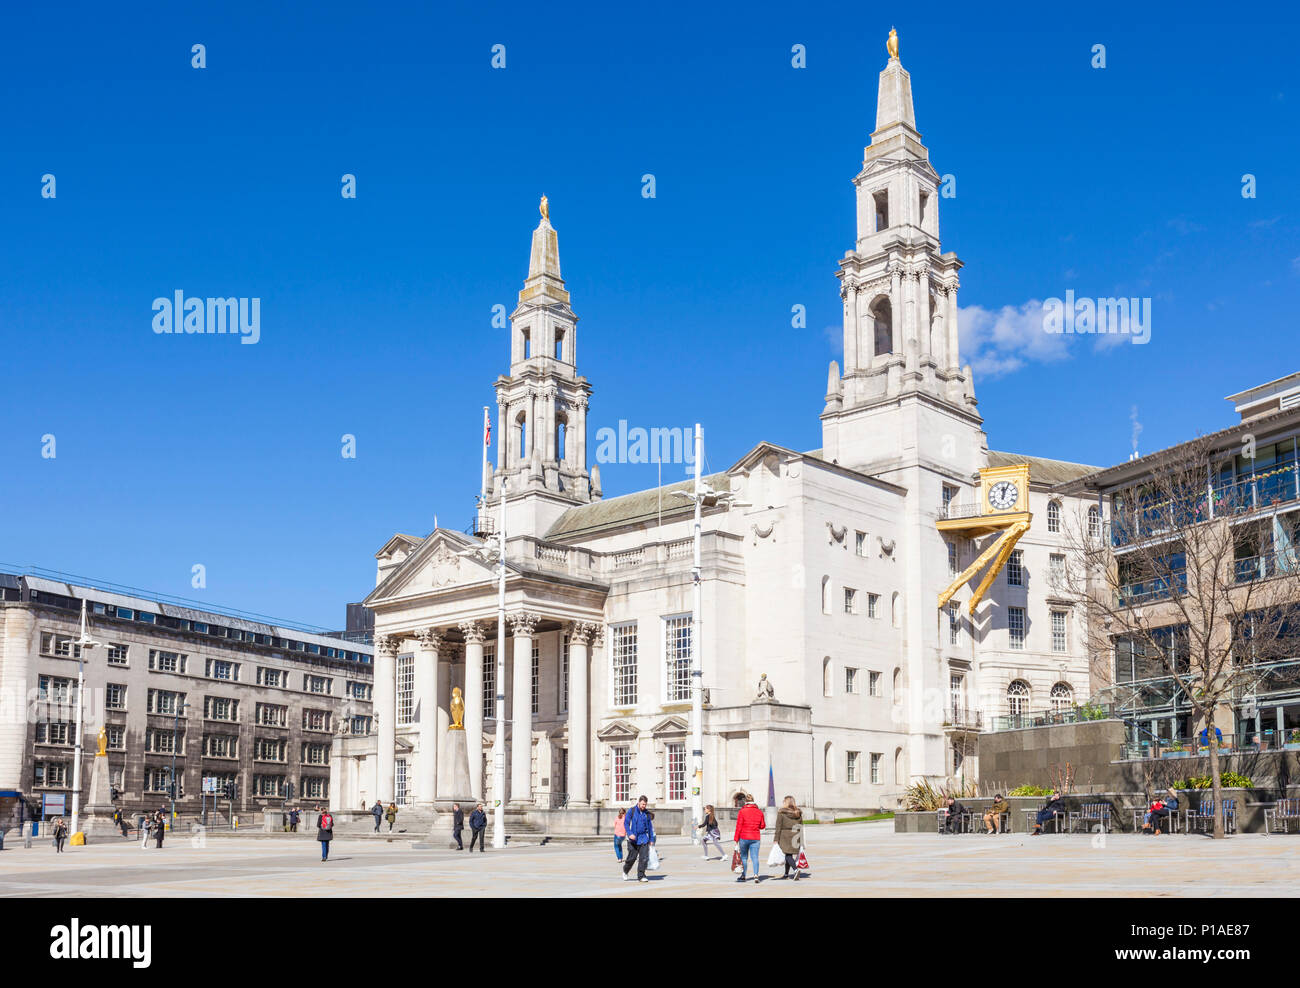 yorkshire england leeds yorkshire england leeds civic hall housing  leeds city council offices leeds city centre yorkshire england uk gb europe - Stock Image